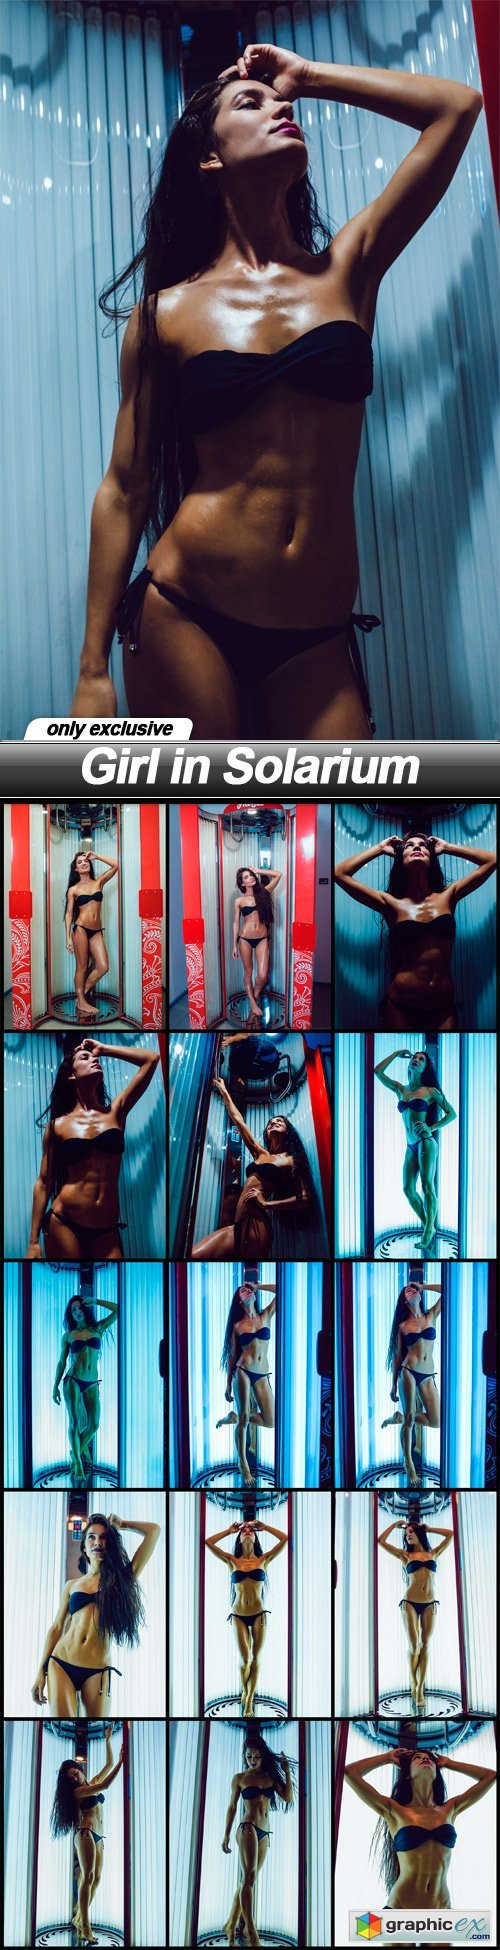 Girl in Solarium - 15 UHQ JPEG